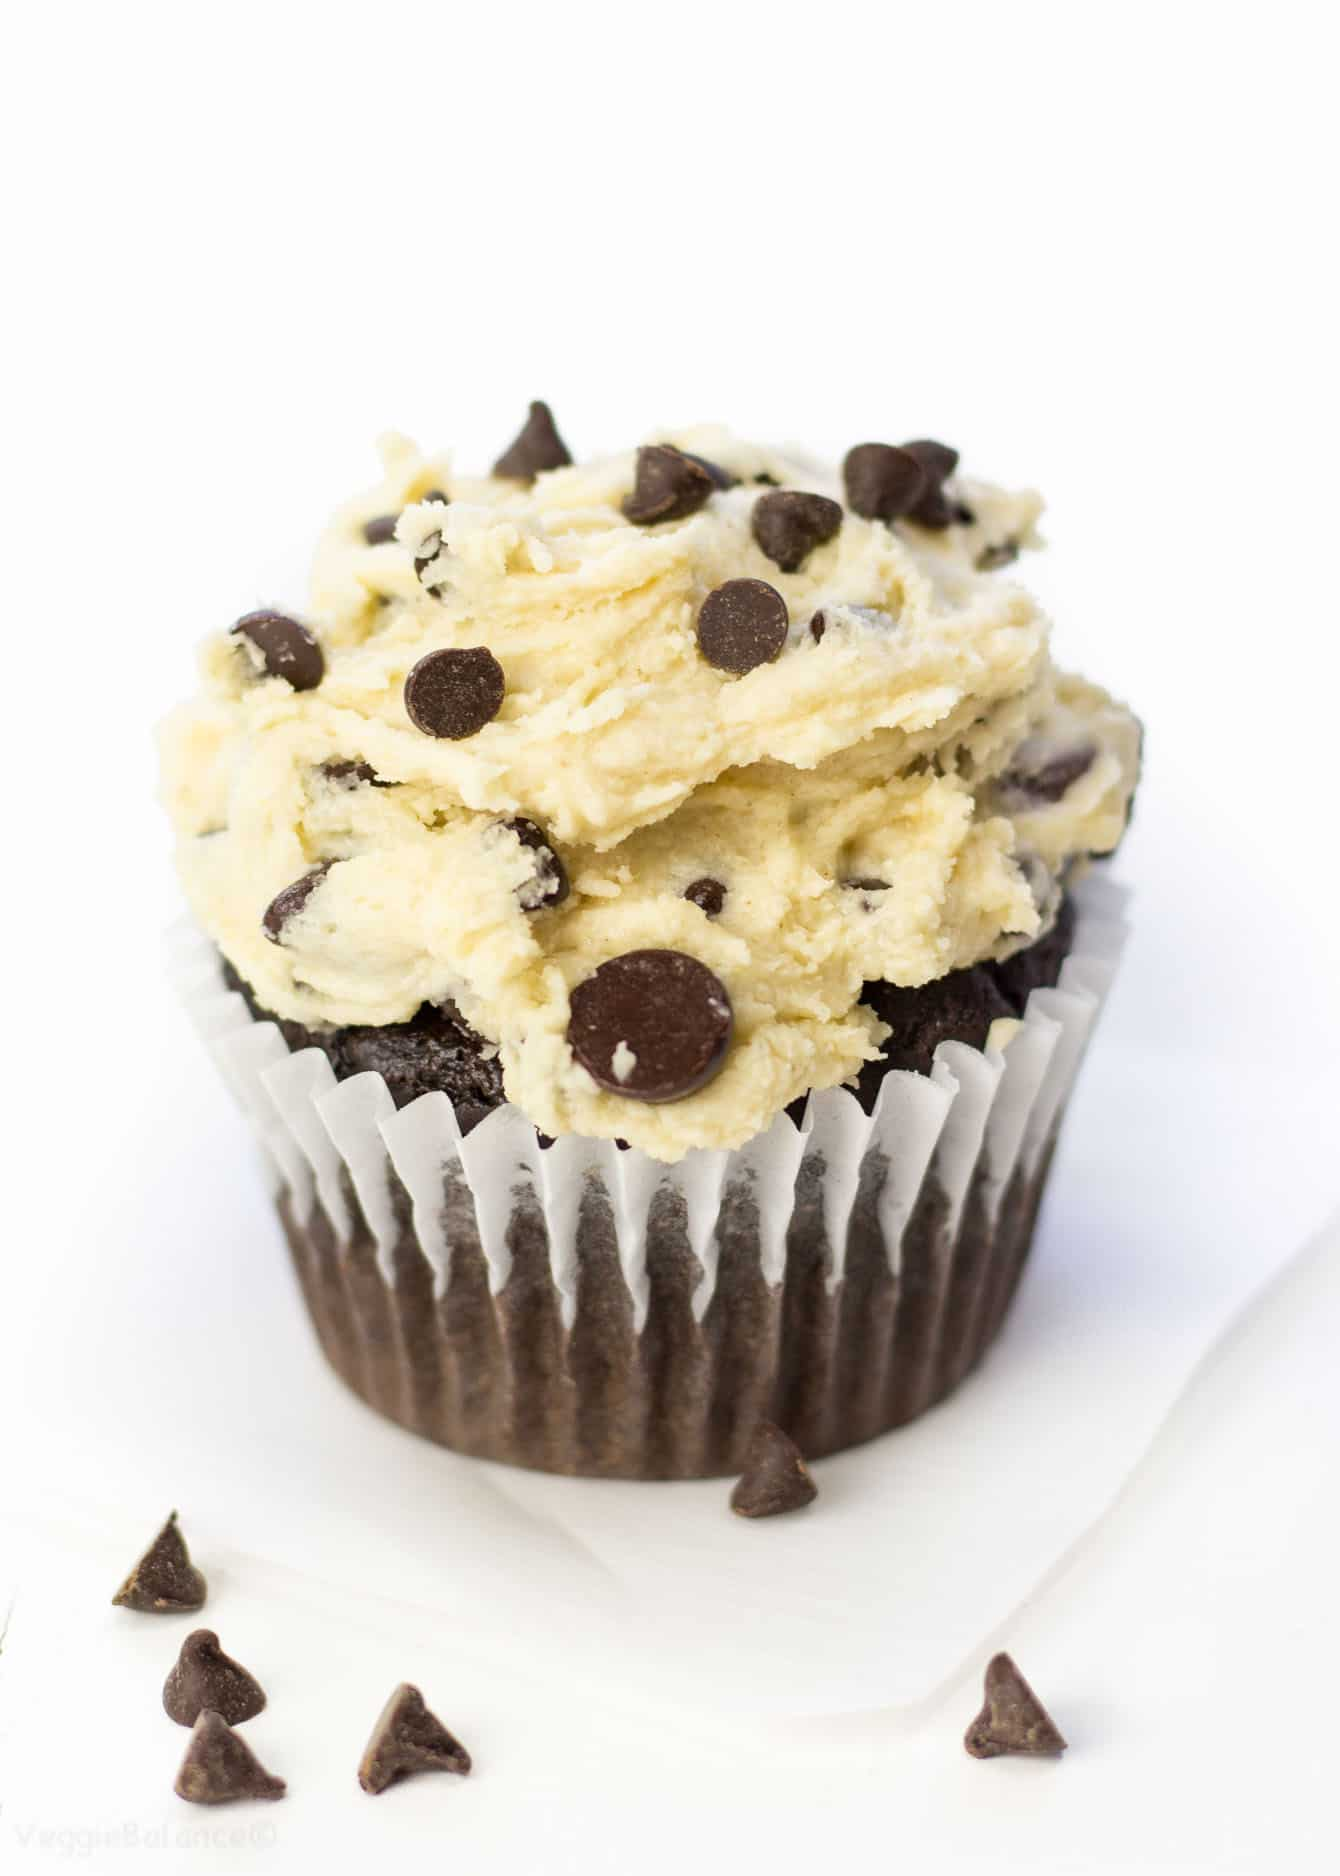 Chocolate Chip Cookie Dough Cupcakes (Gluten Free) - Veggie Balance